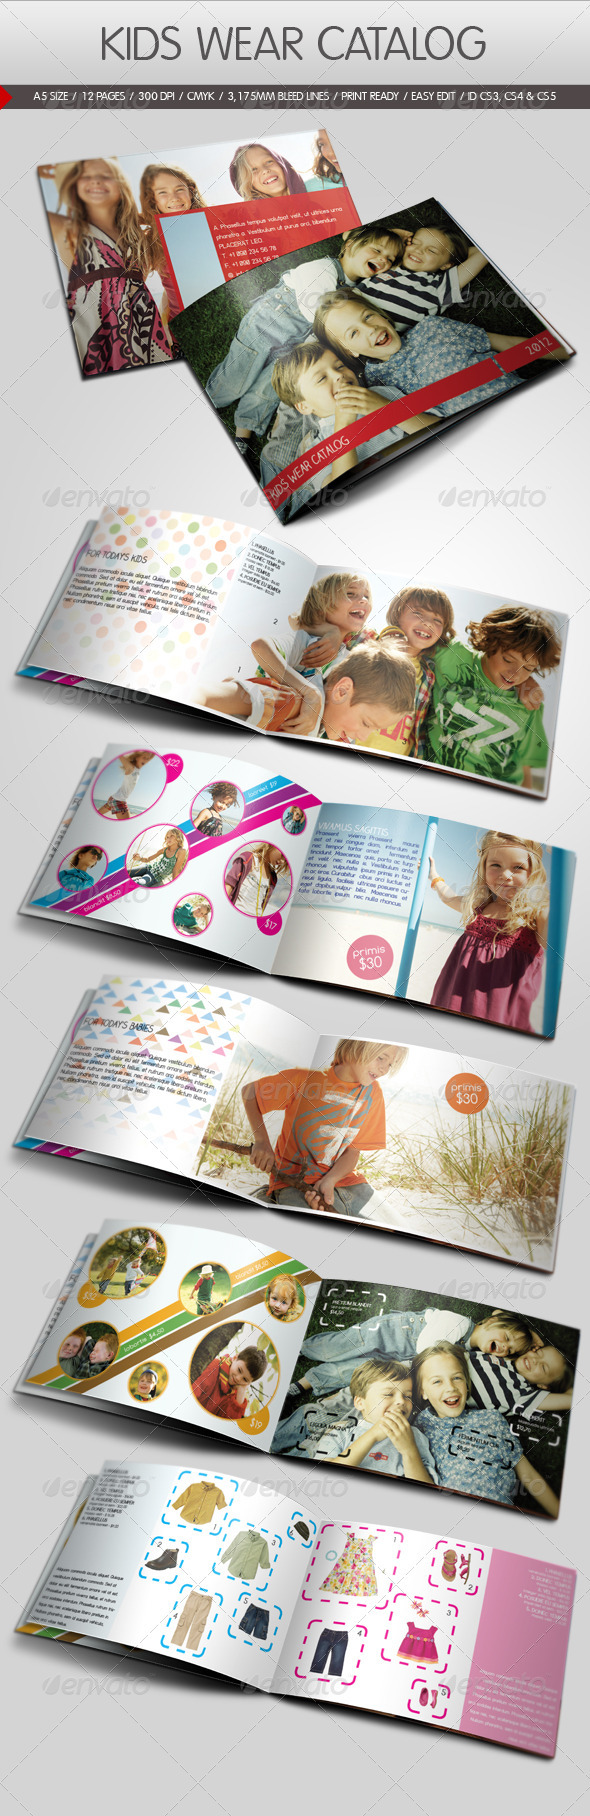 Kids Wear Catalog - Catalogs Brochures